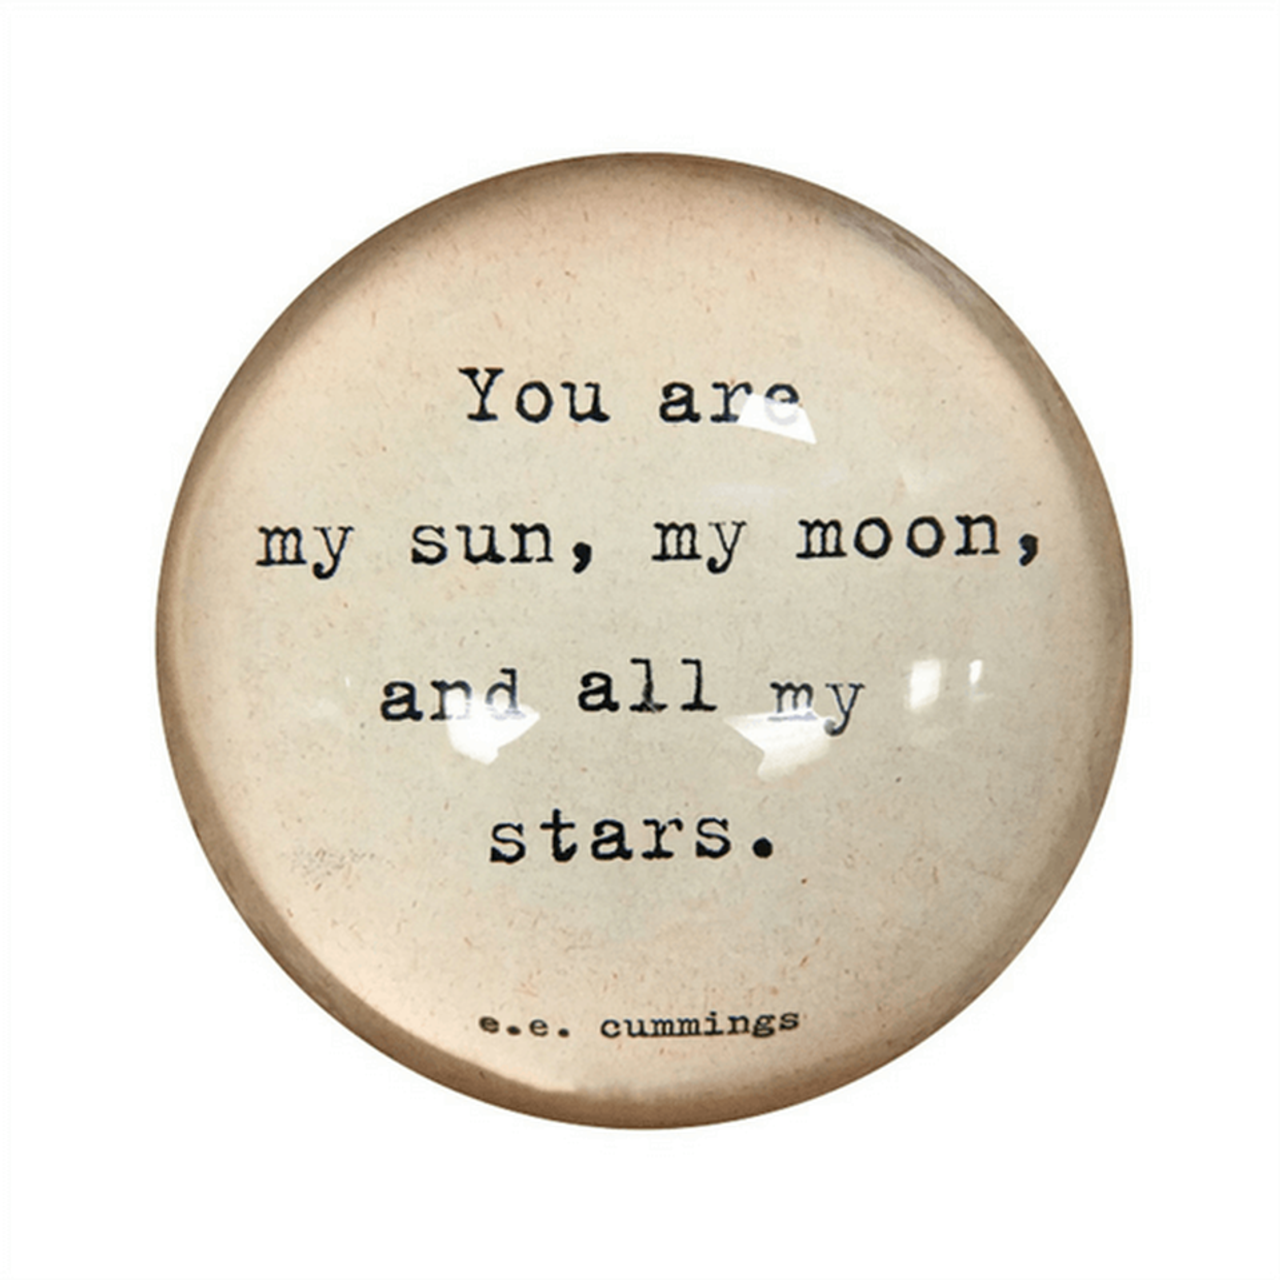 """This classic paperweight features a quote by e.e. cummings that says, """"You are my sun, my moon, and all my stars."""""""